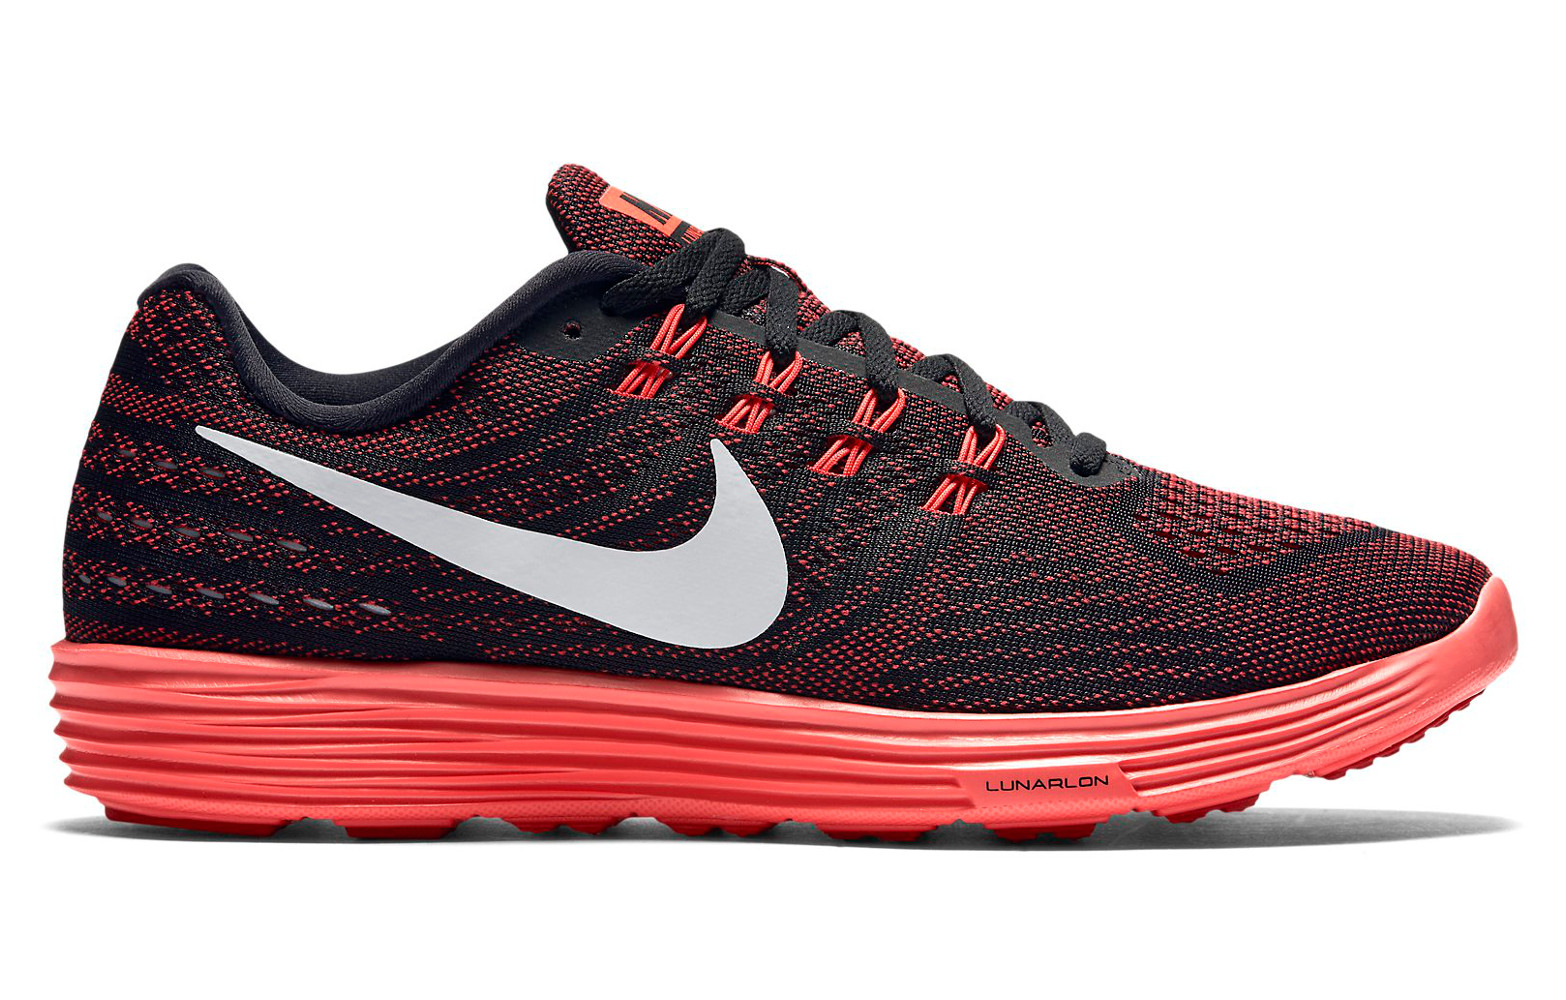 official photos 93cdc c2946 Chaussures de Running Nike LUNARTEMPO 2 Rouge